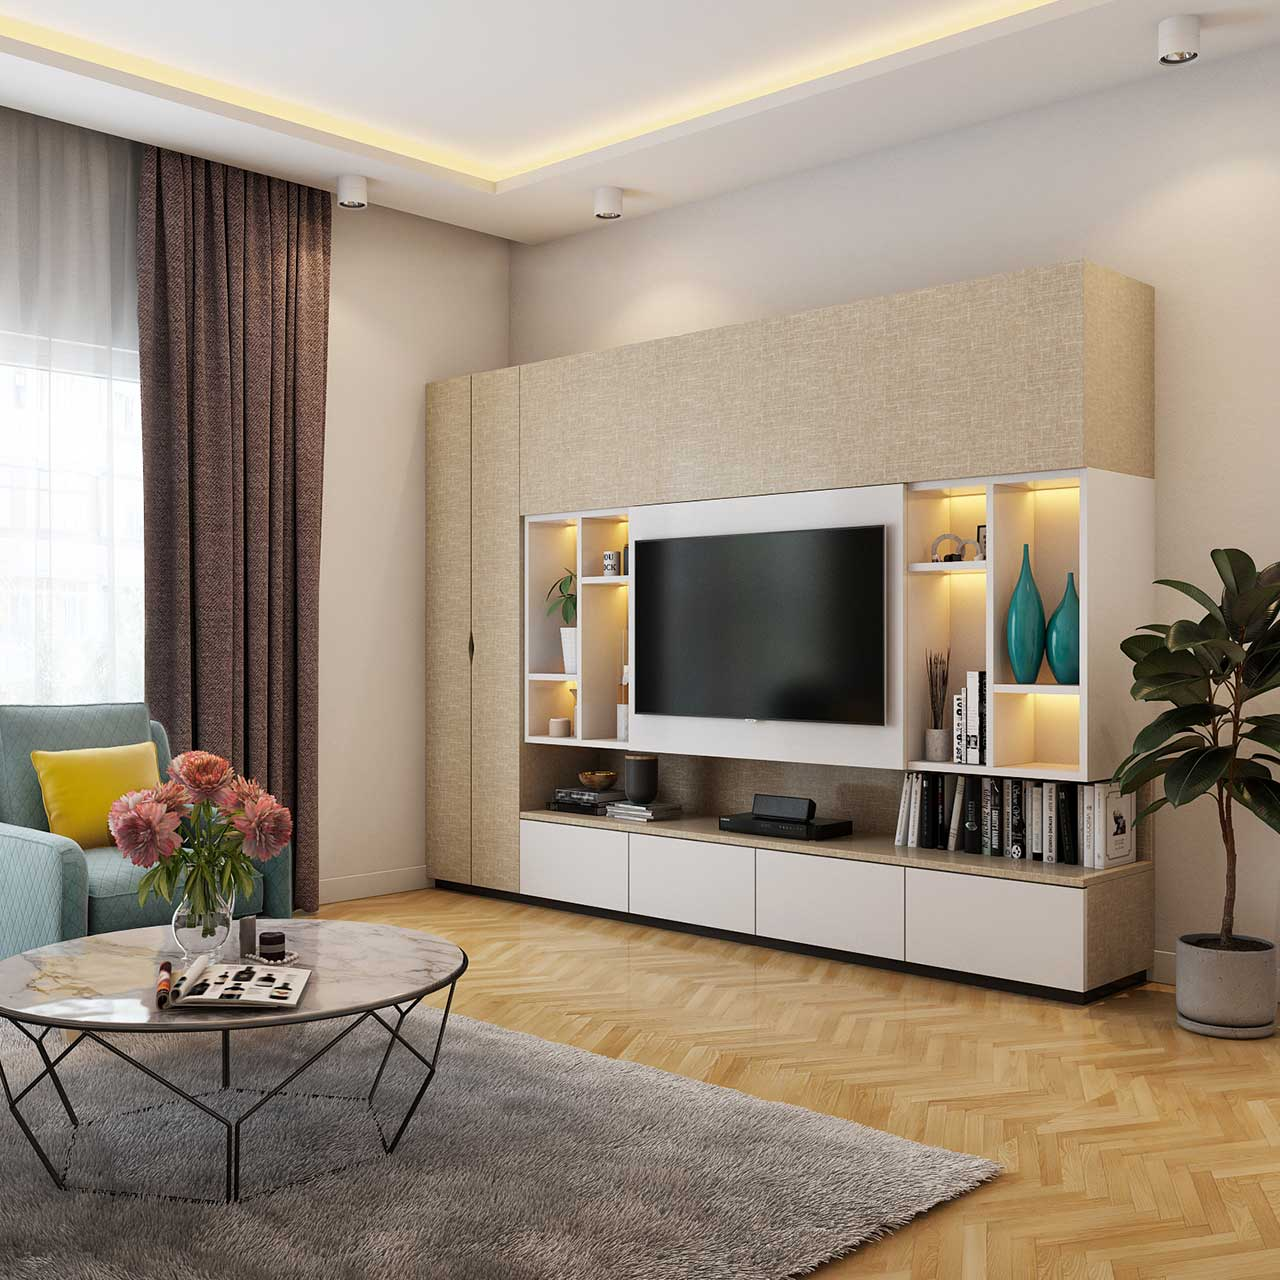 Modern Classic Furniture for Apartment